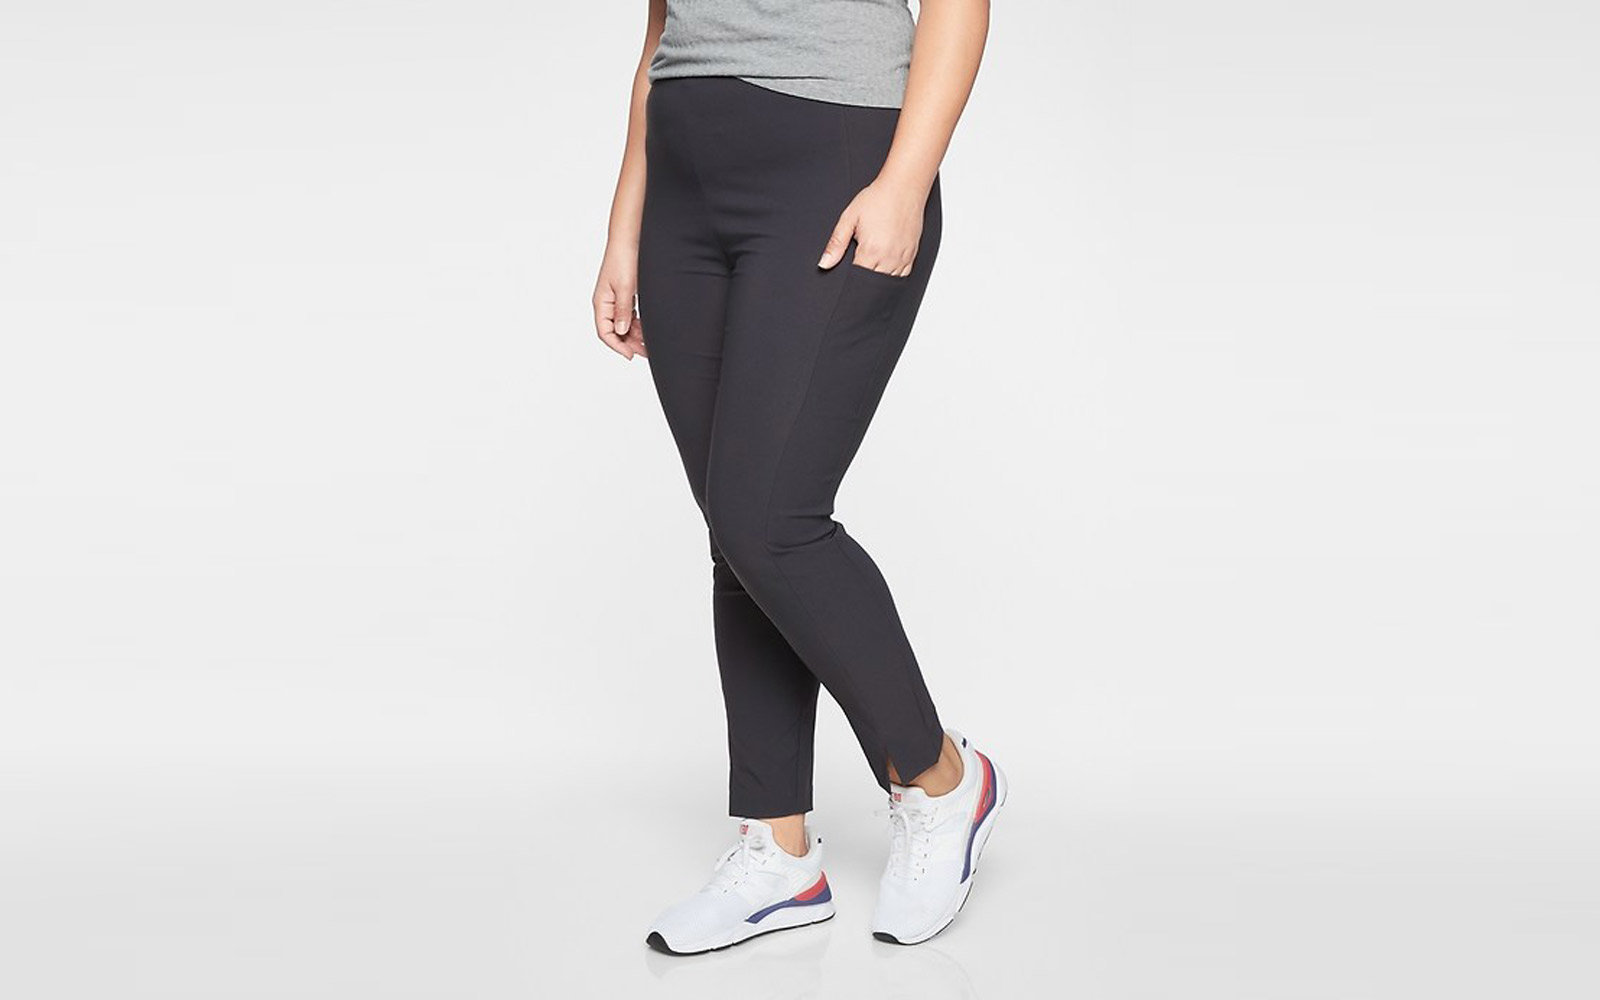 533f7fab7f The Best Travel Pants for Women Who Hate Flying in Jeans | Travel + ...